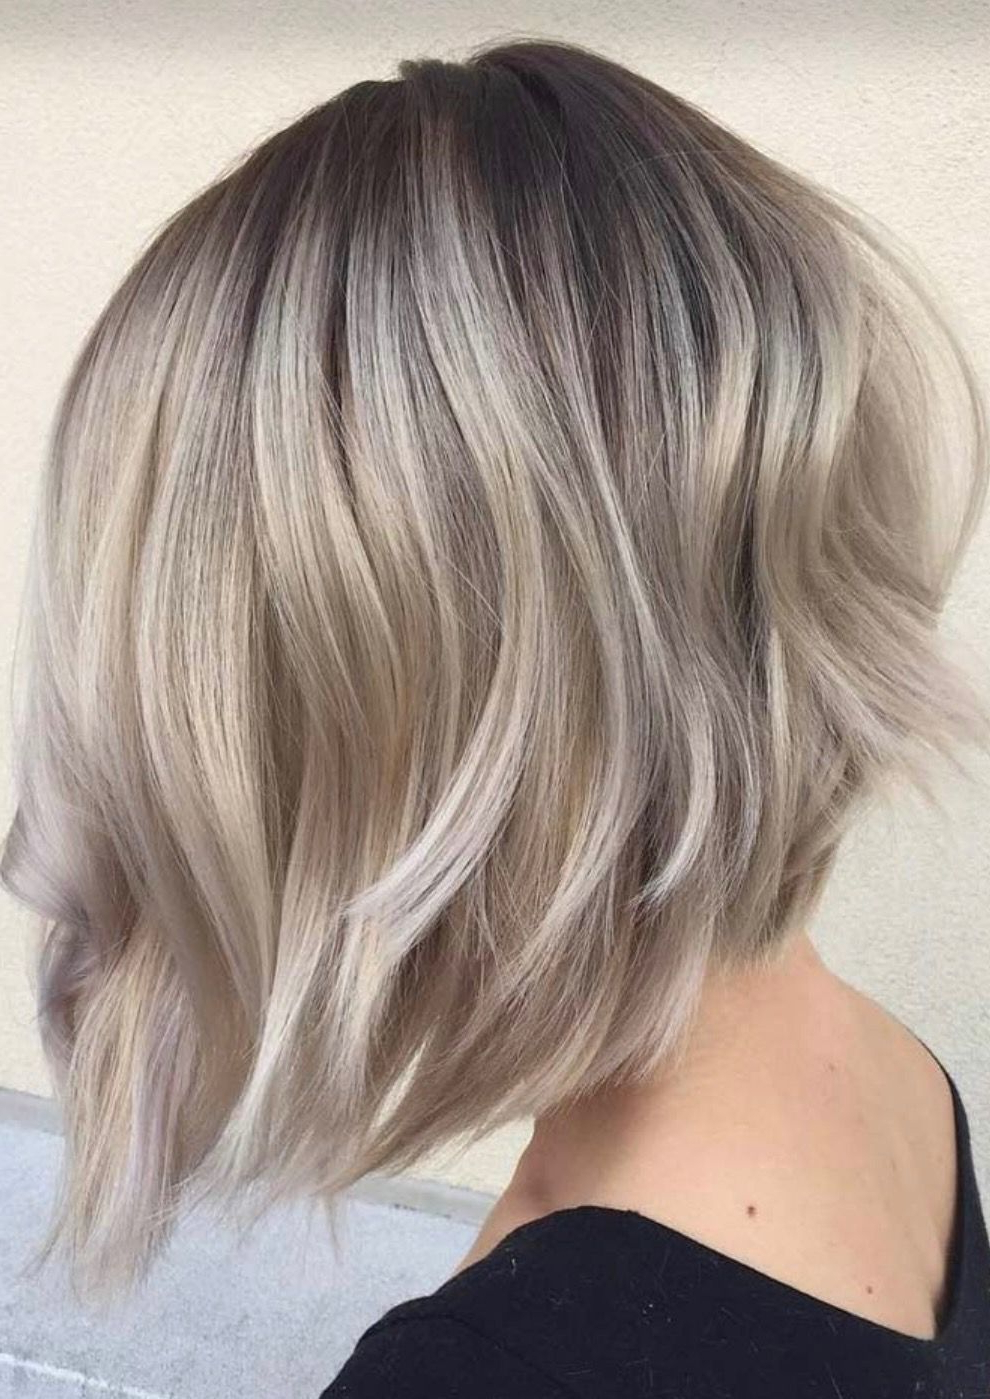 Pinlatasha Schilling On Hair Ideas   Thin Hair In Ash Blonde Balayage For Short Stacked Bob Hairstyles (View 6 of 20)